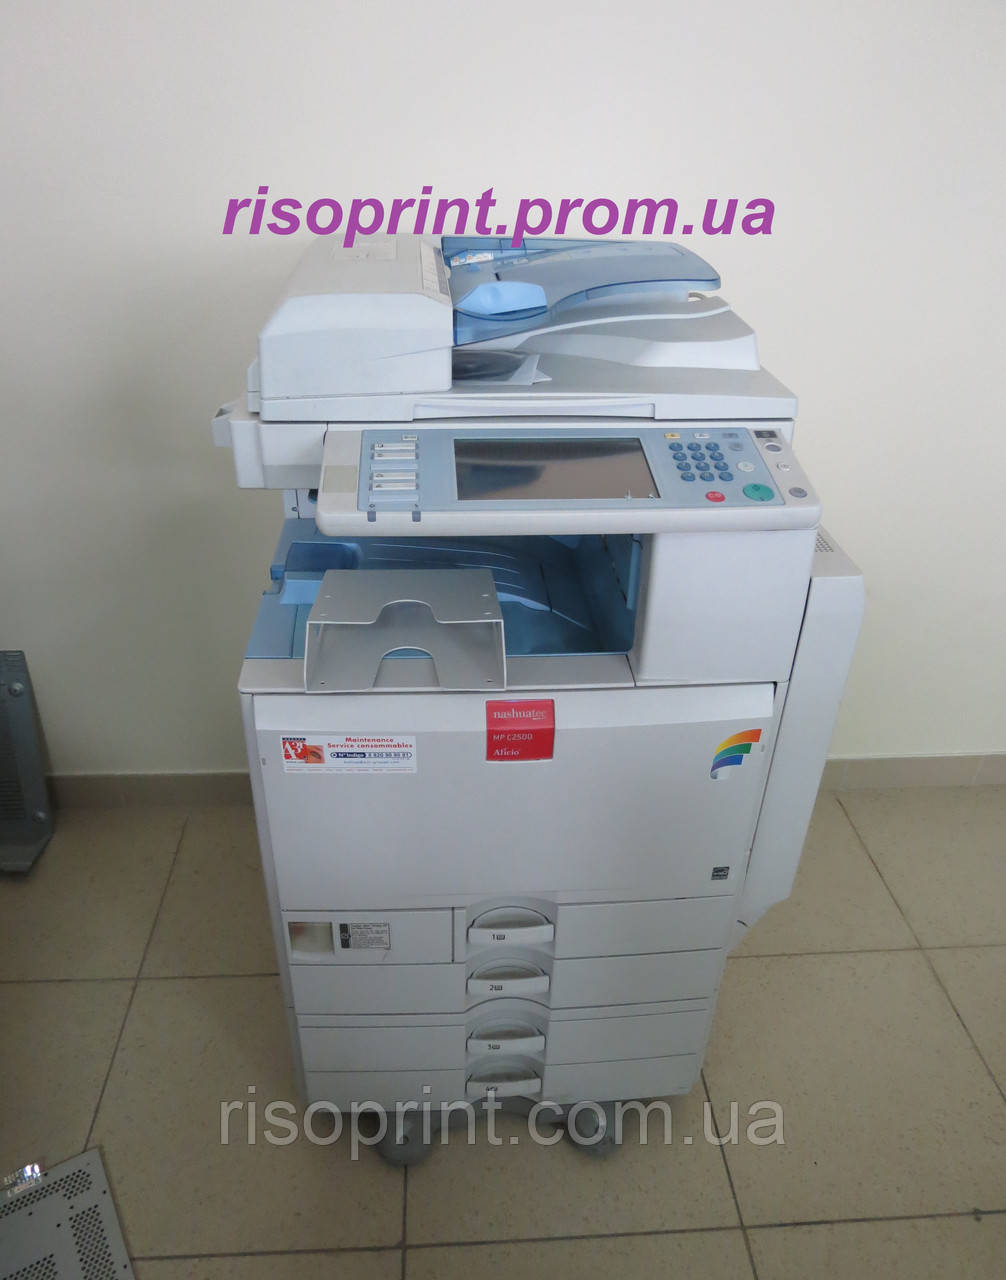 МФУ Nashuatec MP C2500 б/у